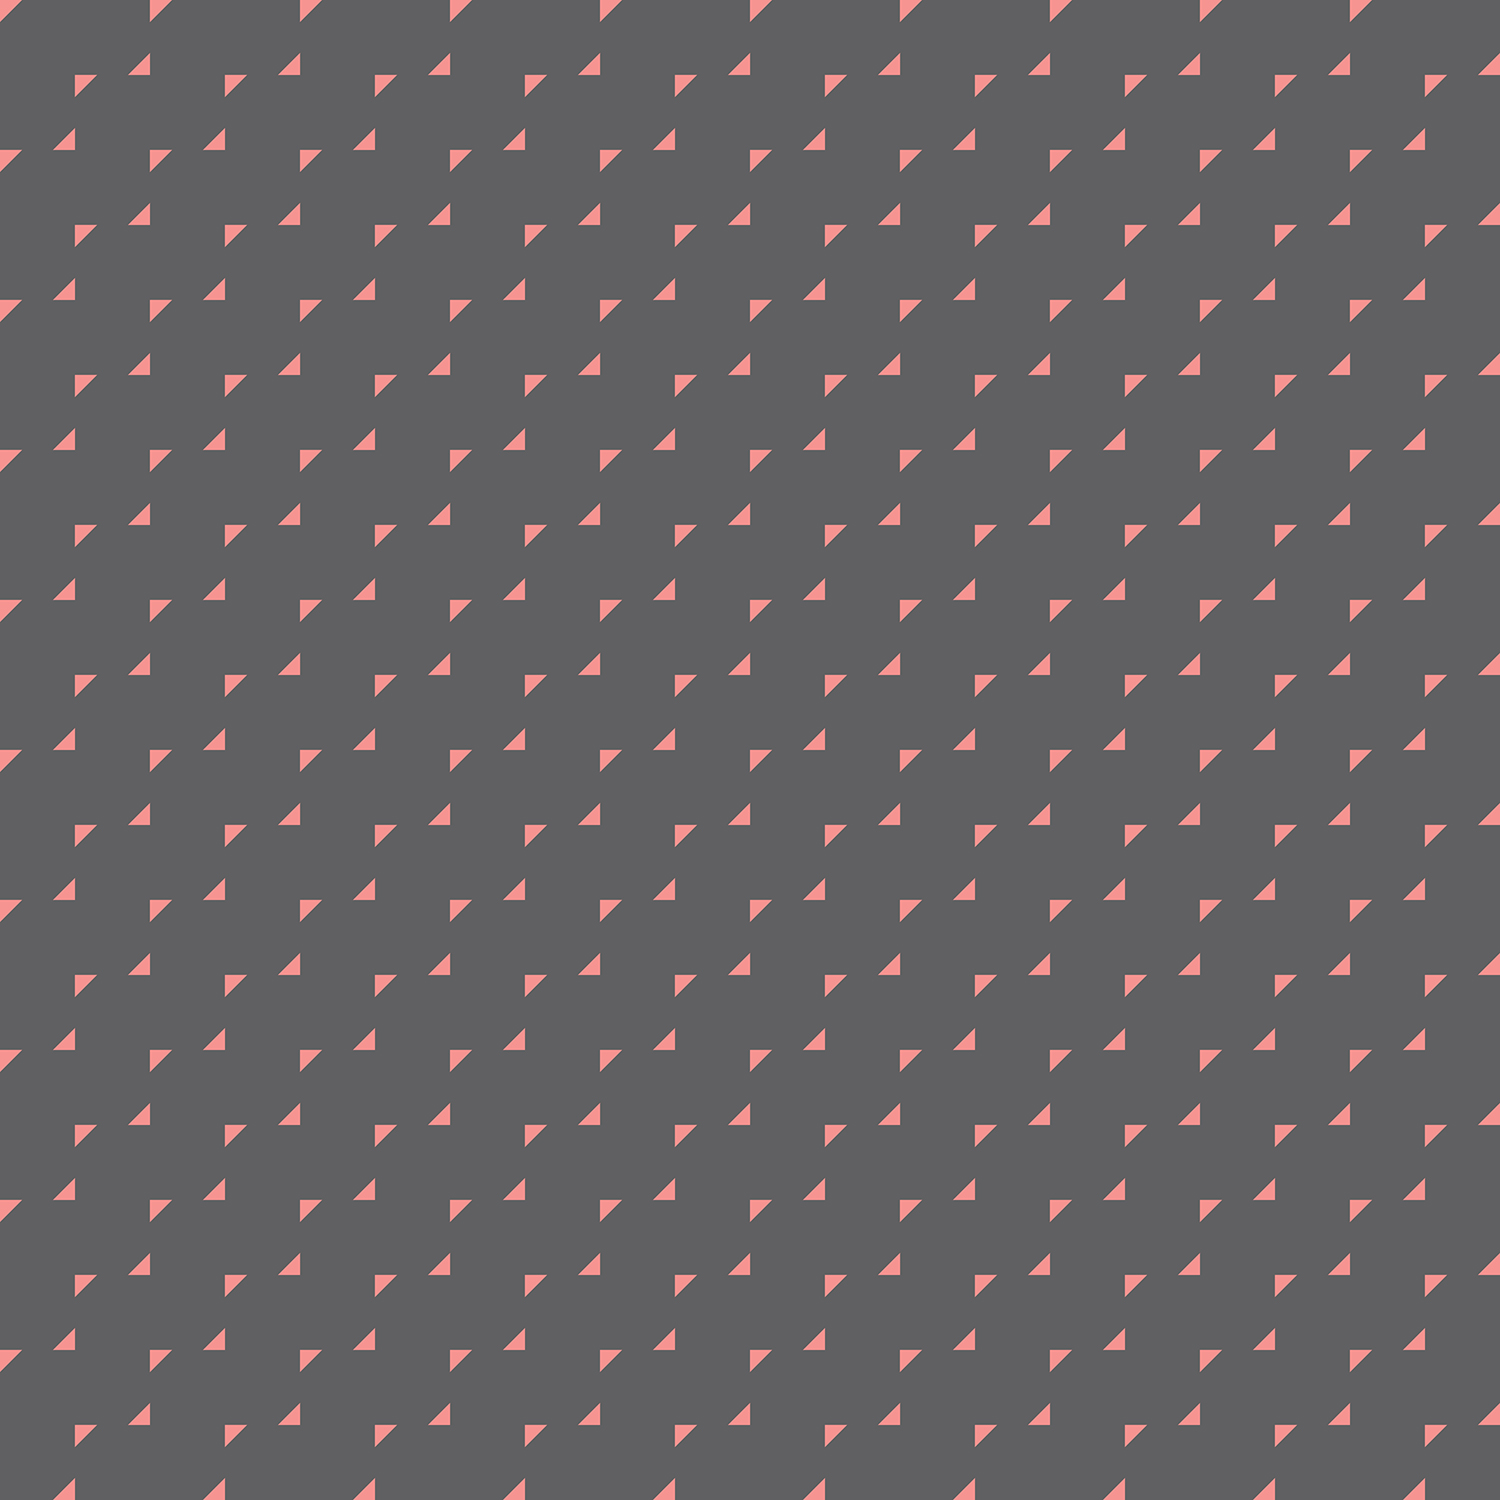 Seamless Patterns example image 2